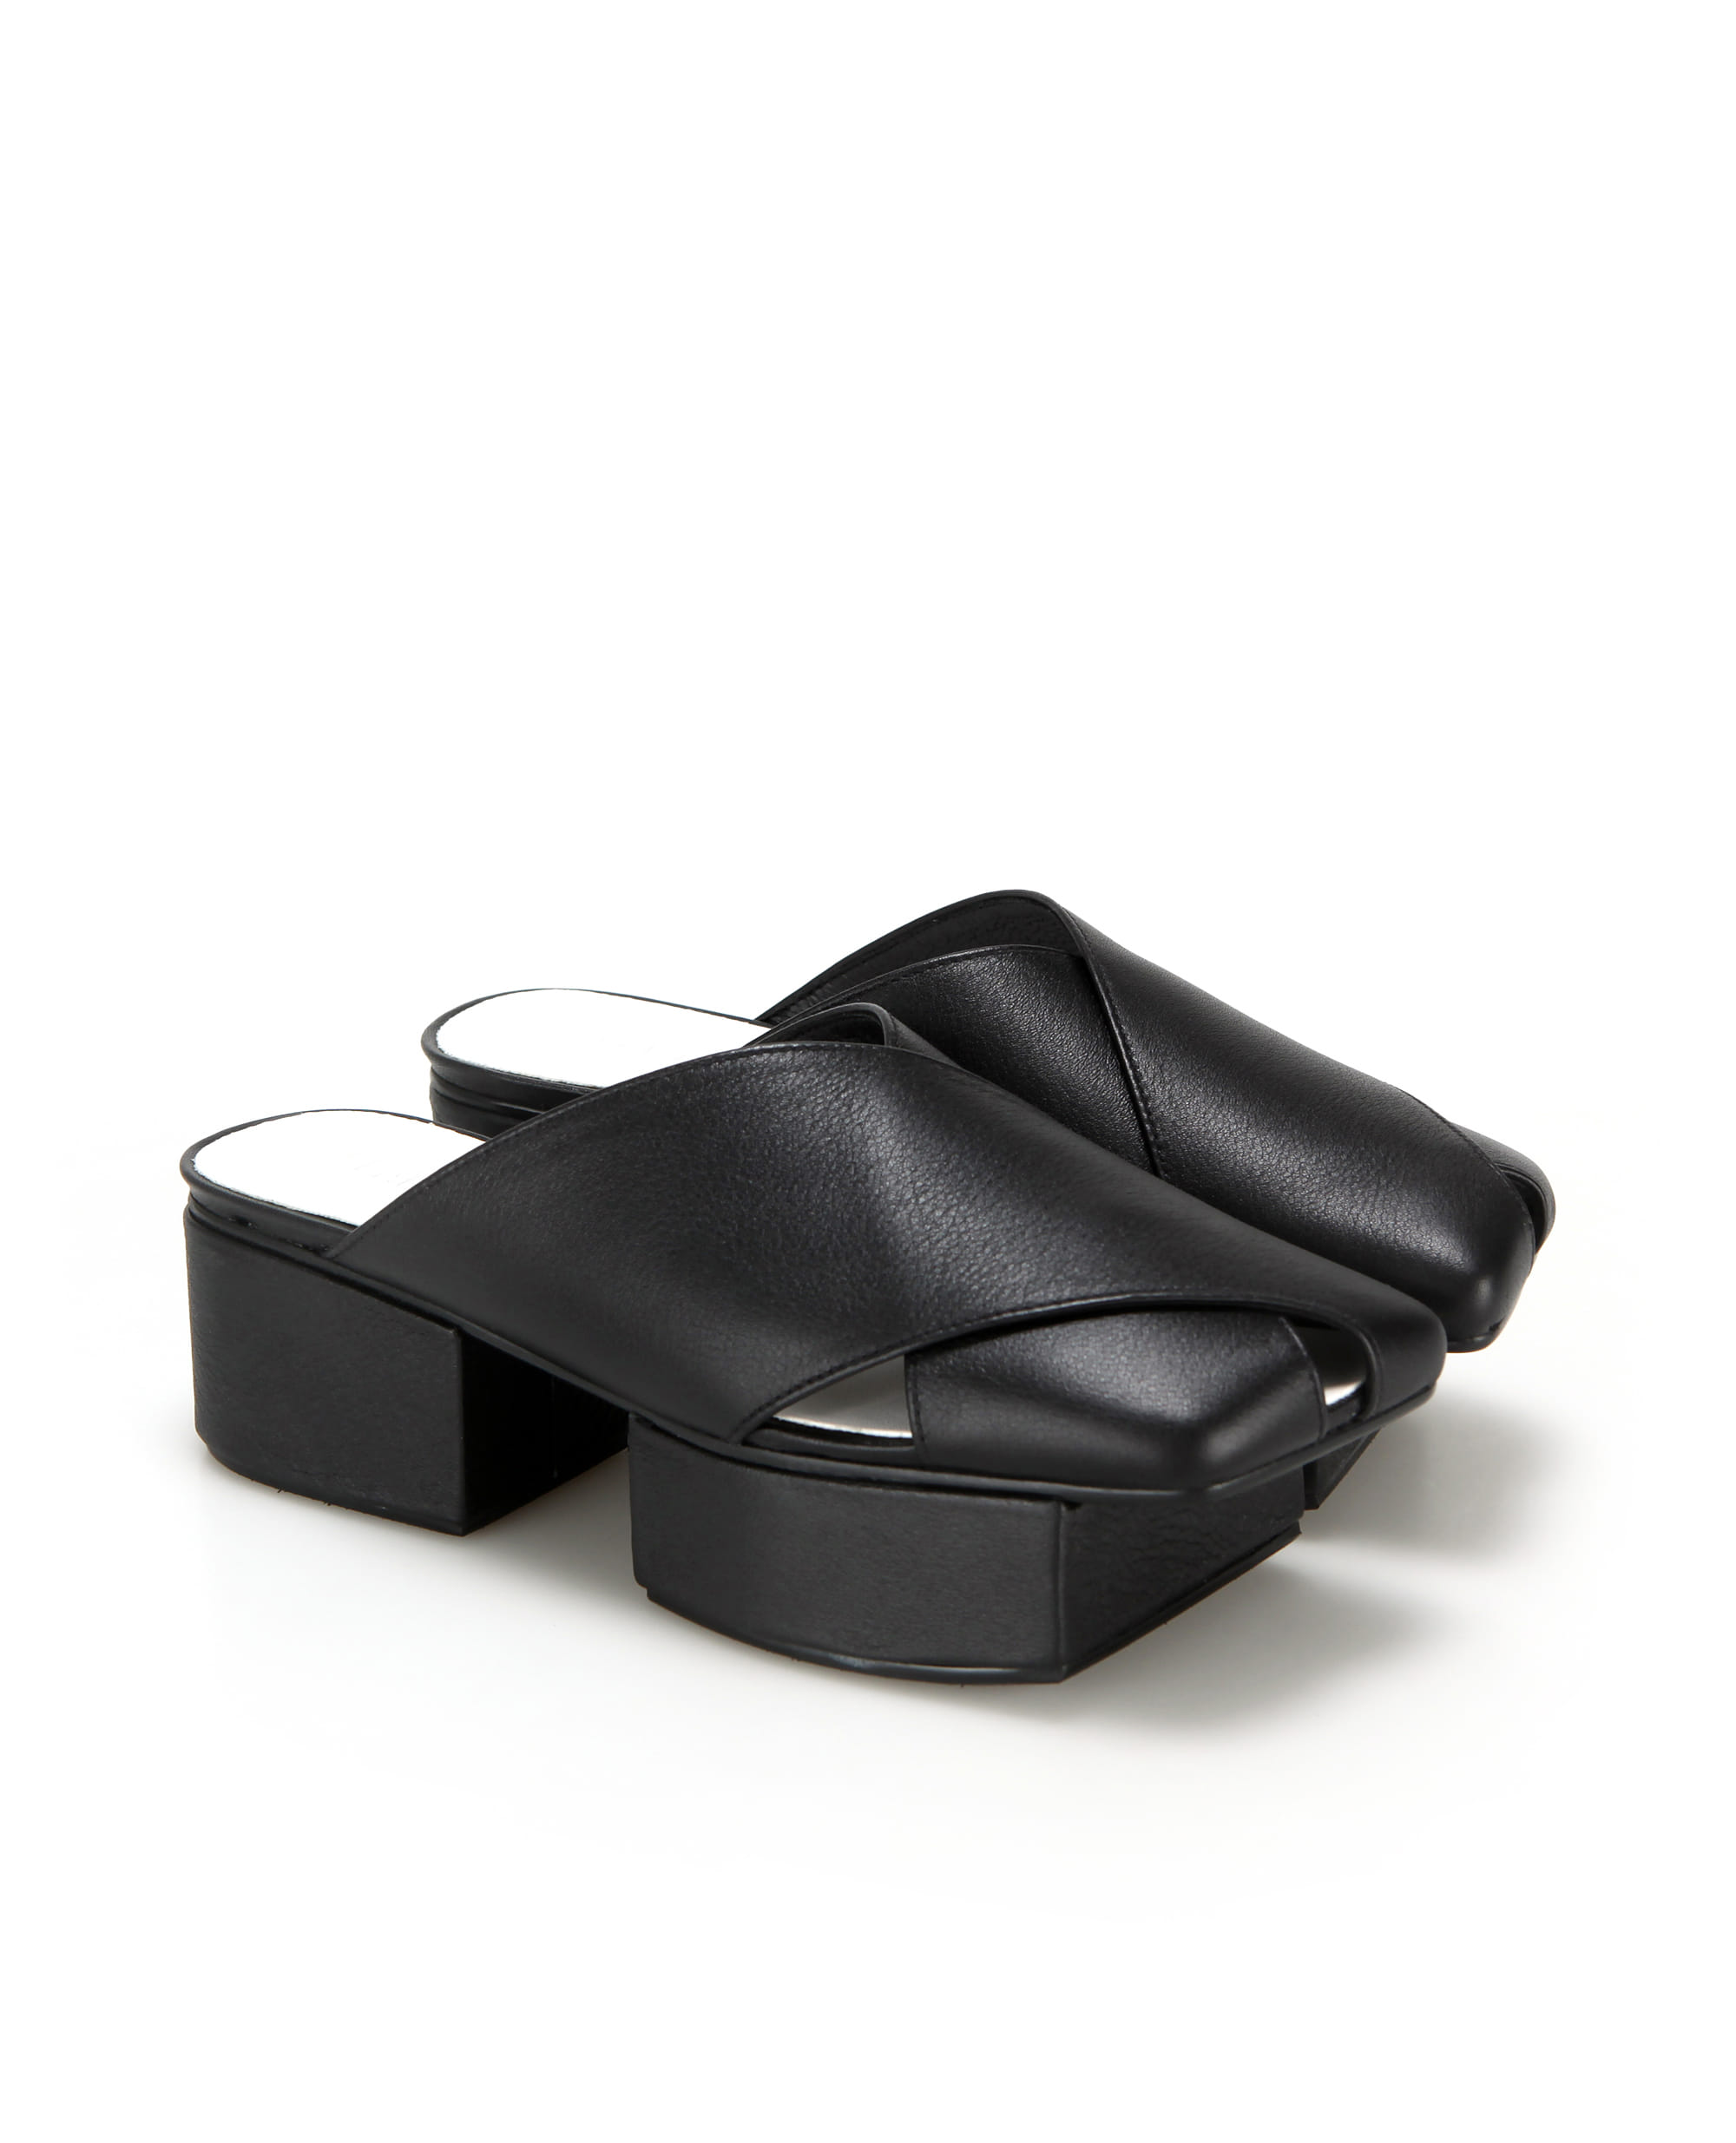 Squared toe crisscross with separated platforms | Black